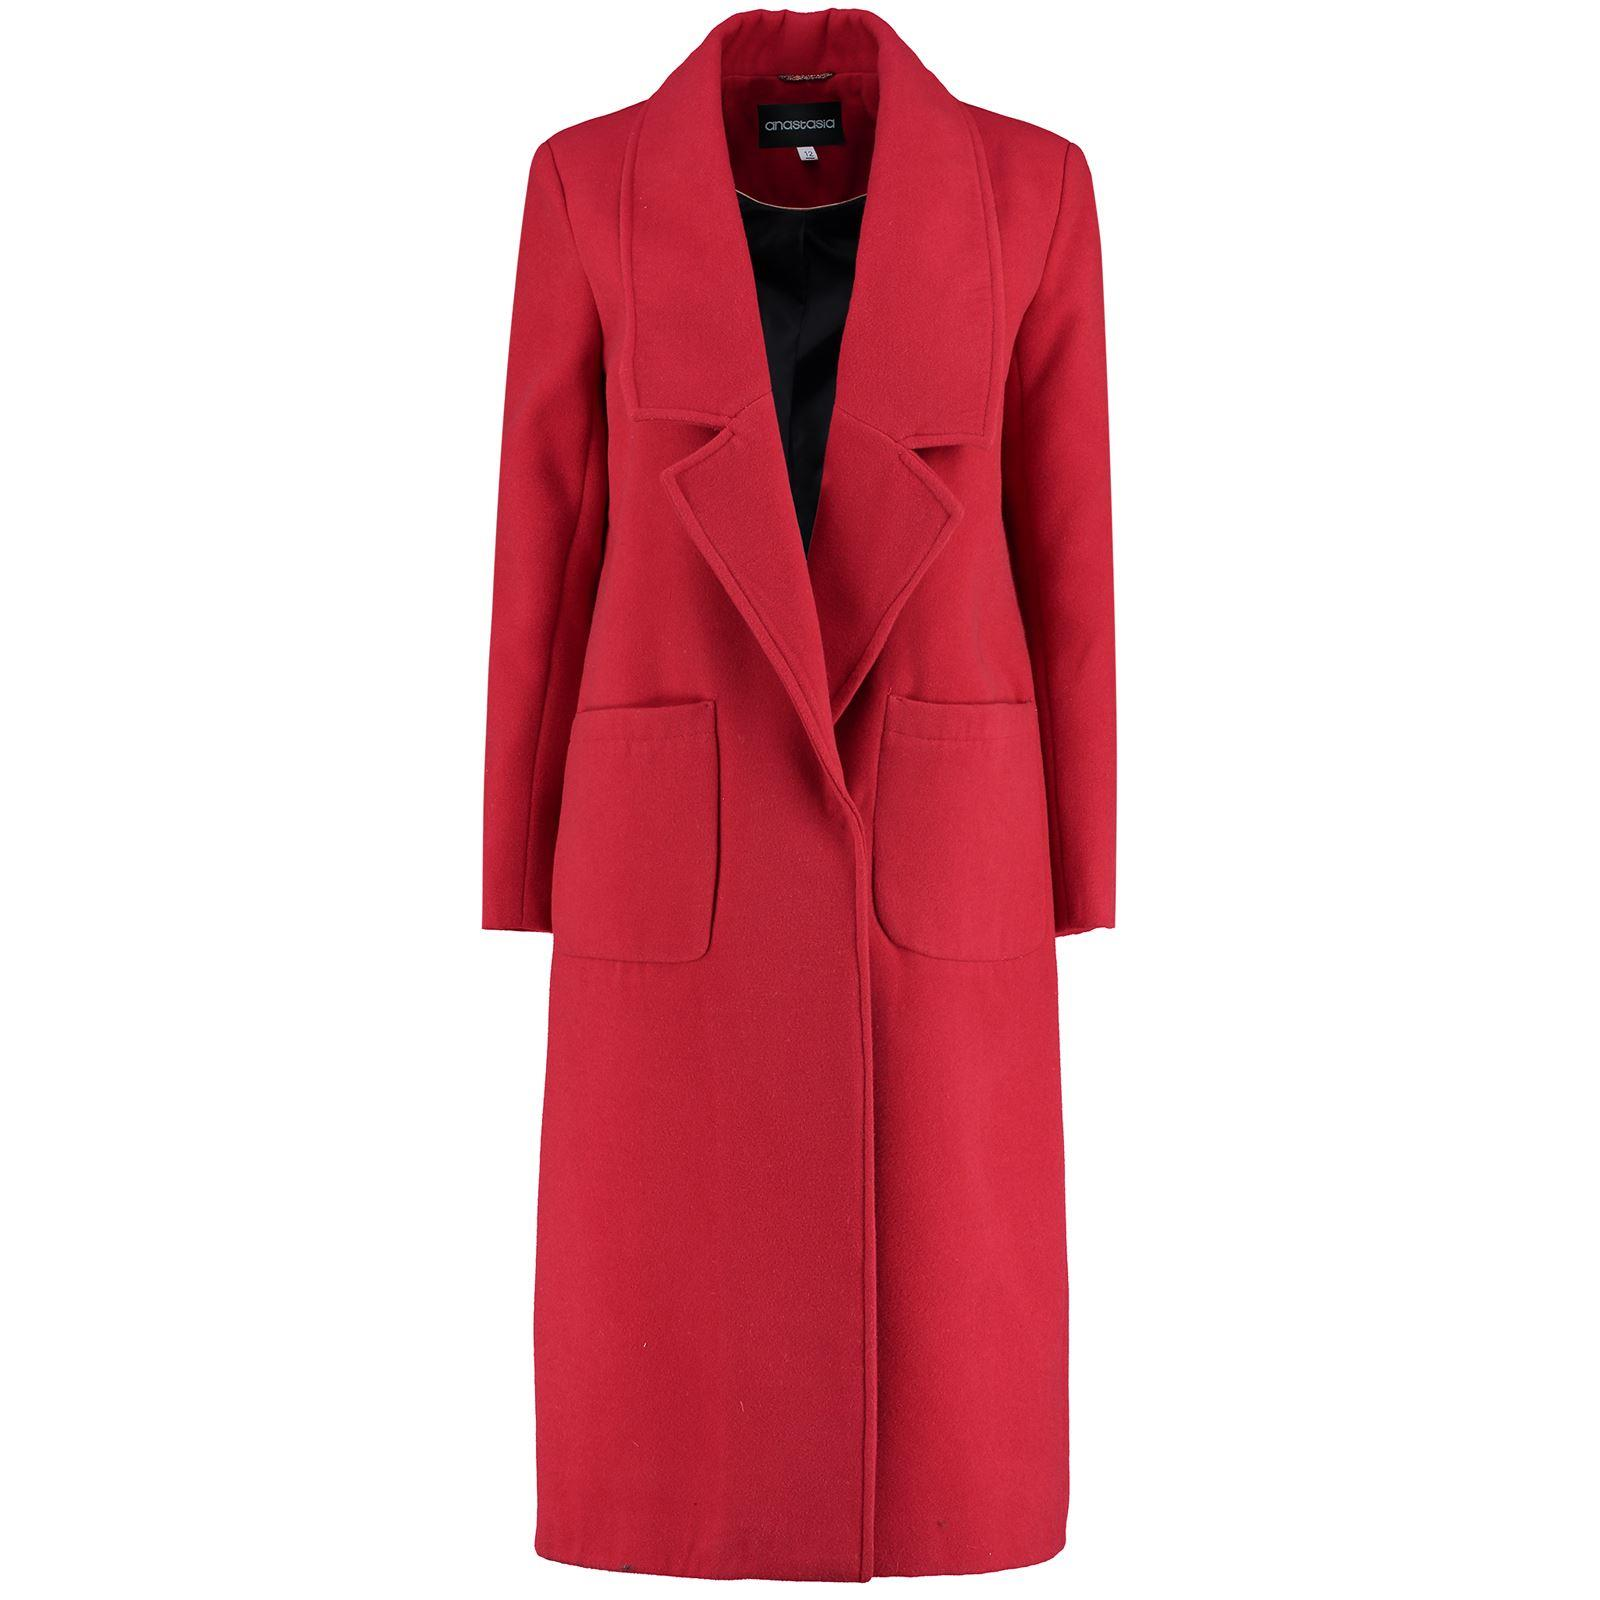 Anastasia - Womens Winter Faux Wool Long Coat